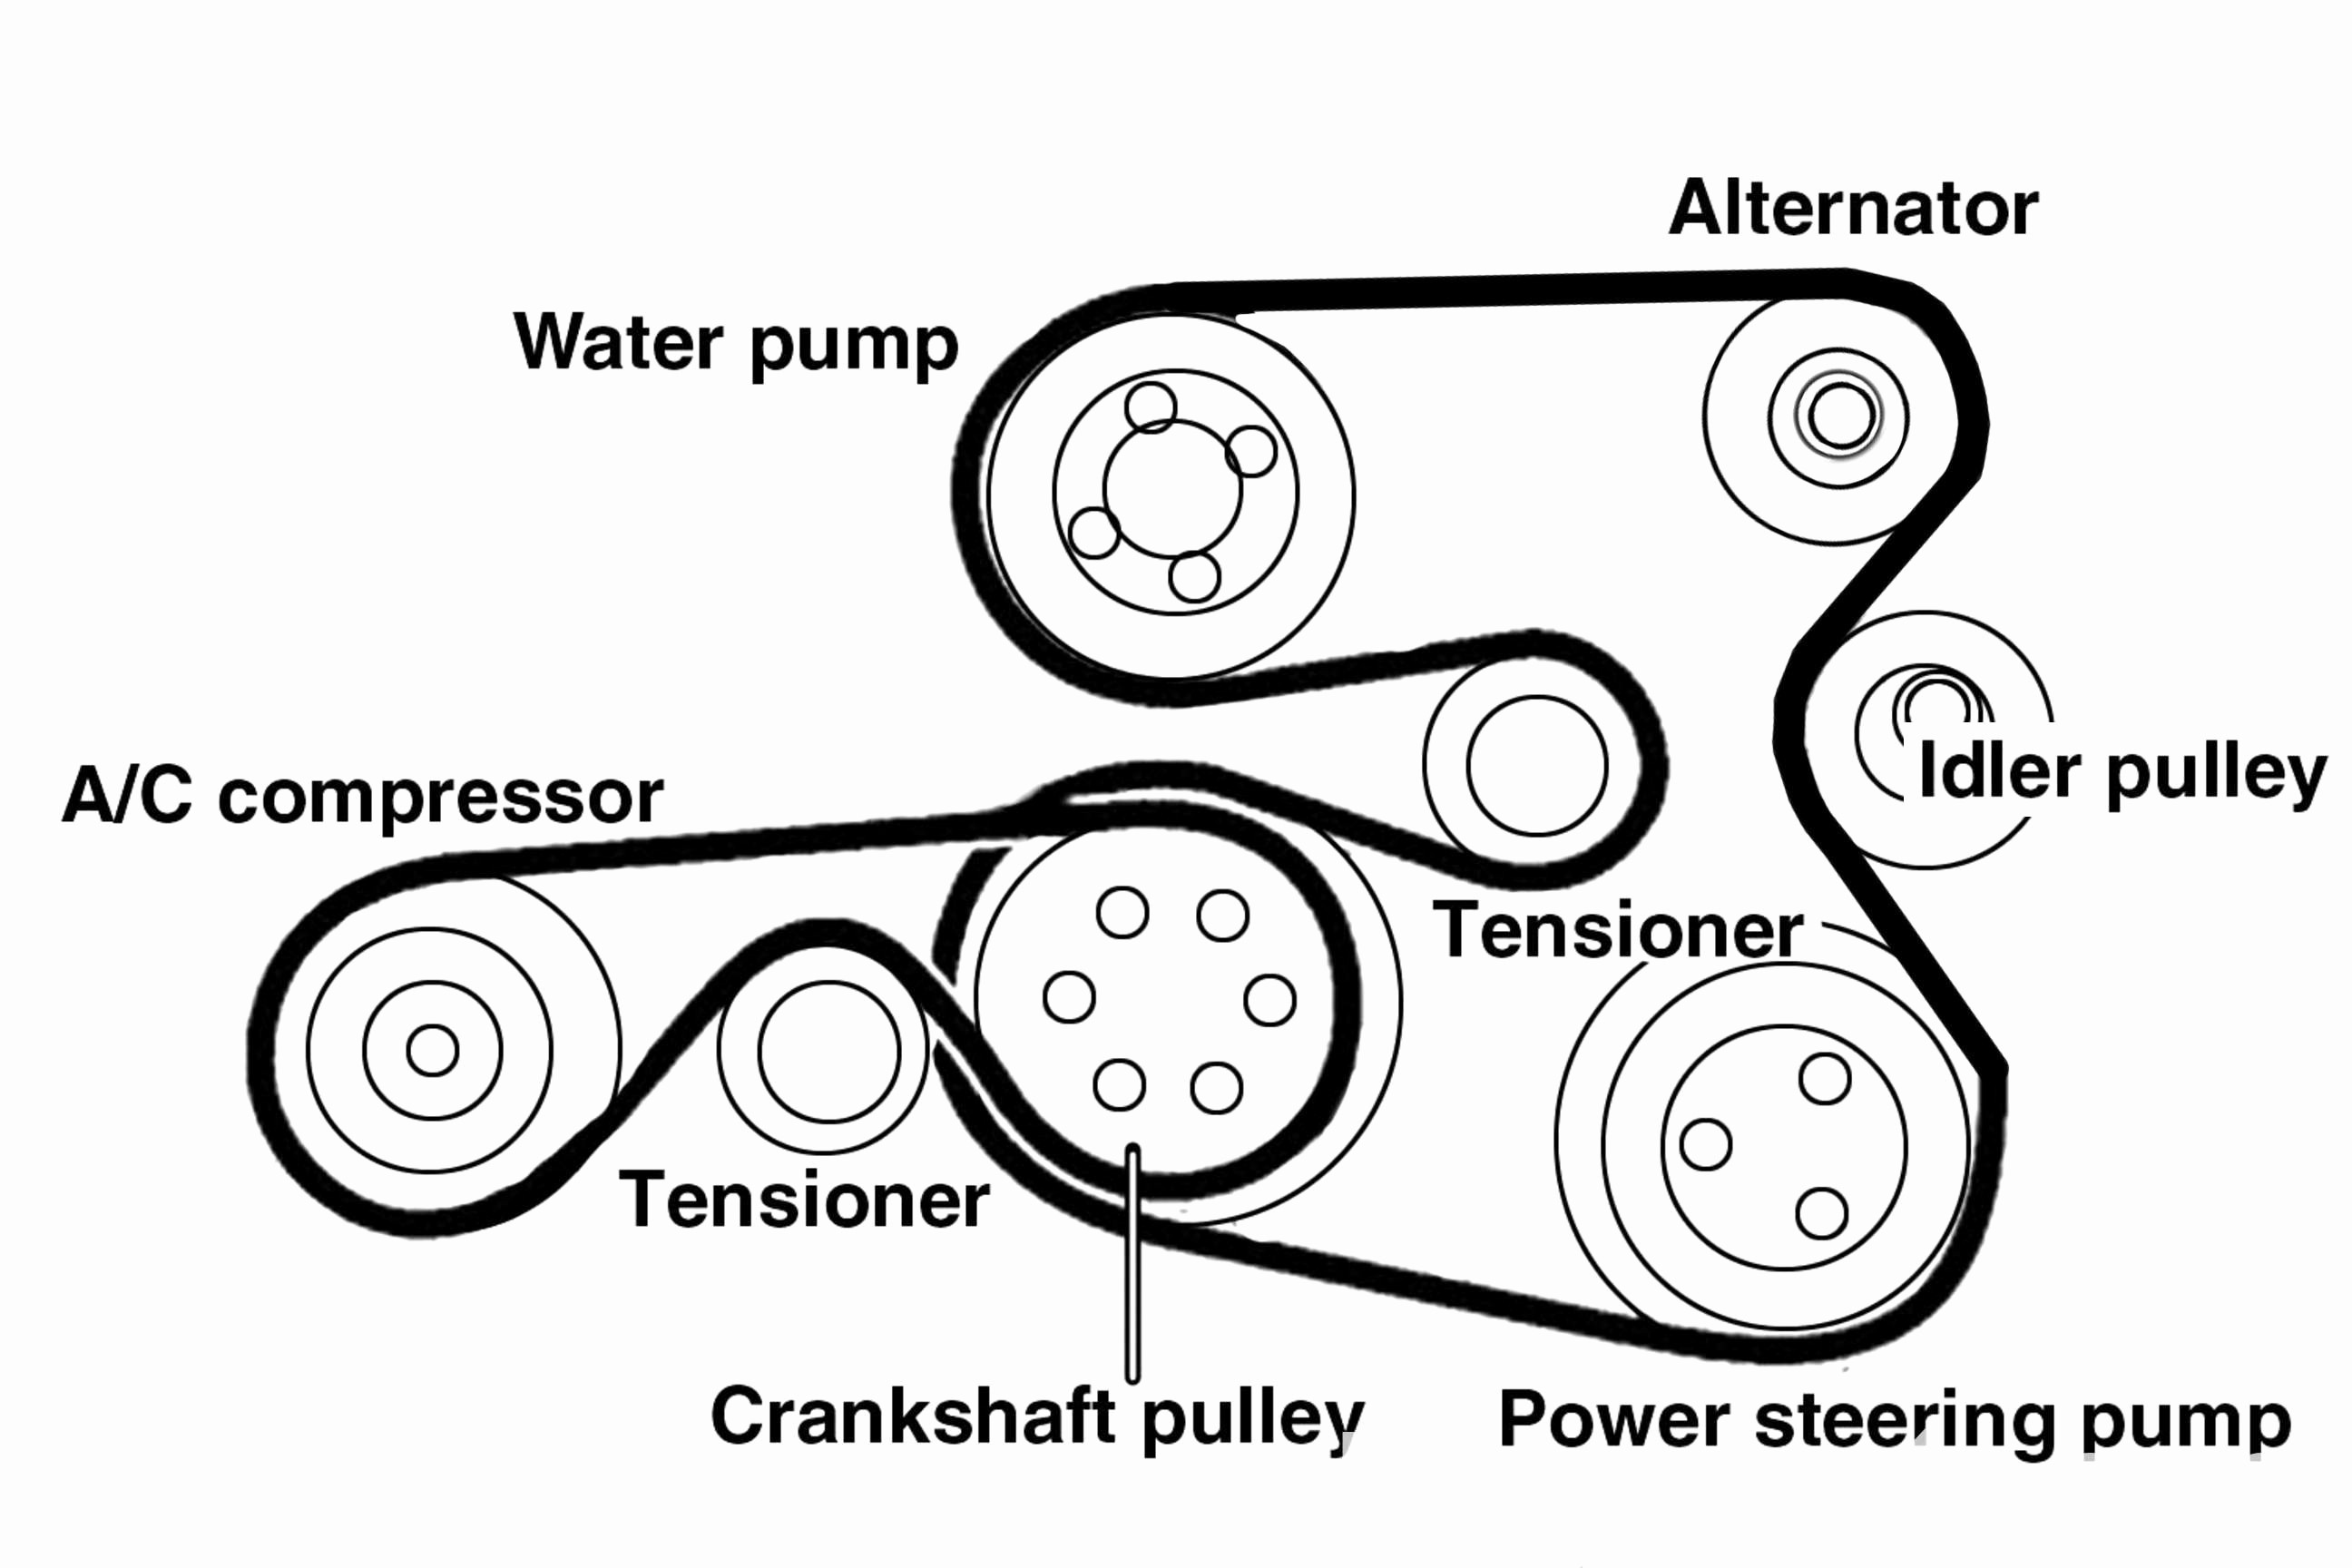 Car Engine Belt Diagram My Wiring 2011 Bmw X3 2007 Serpentine Beautiful Pelican Technical Article M54 6 Cylinder